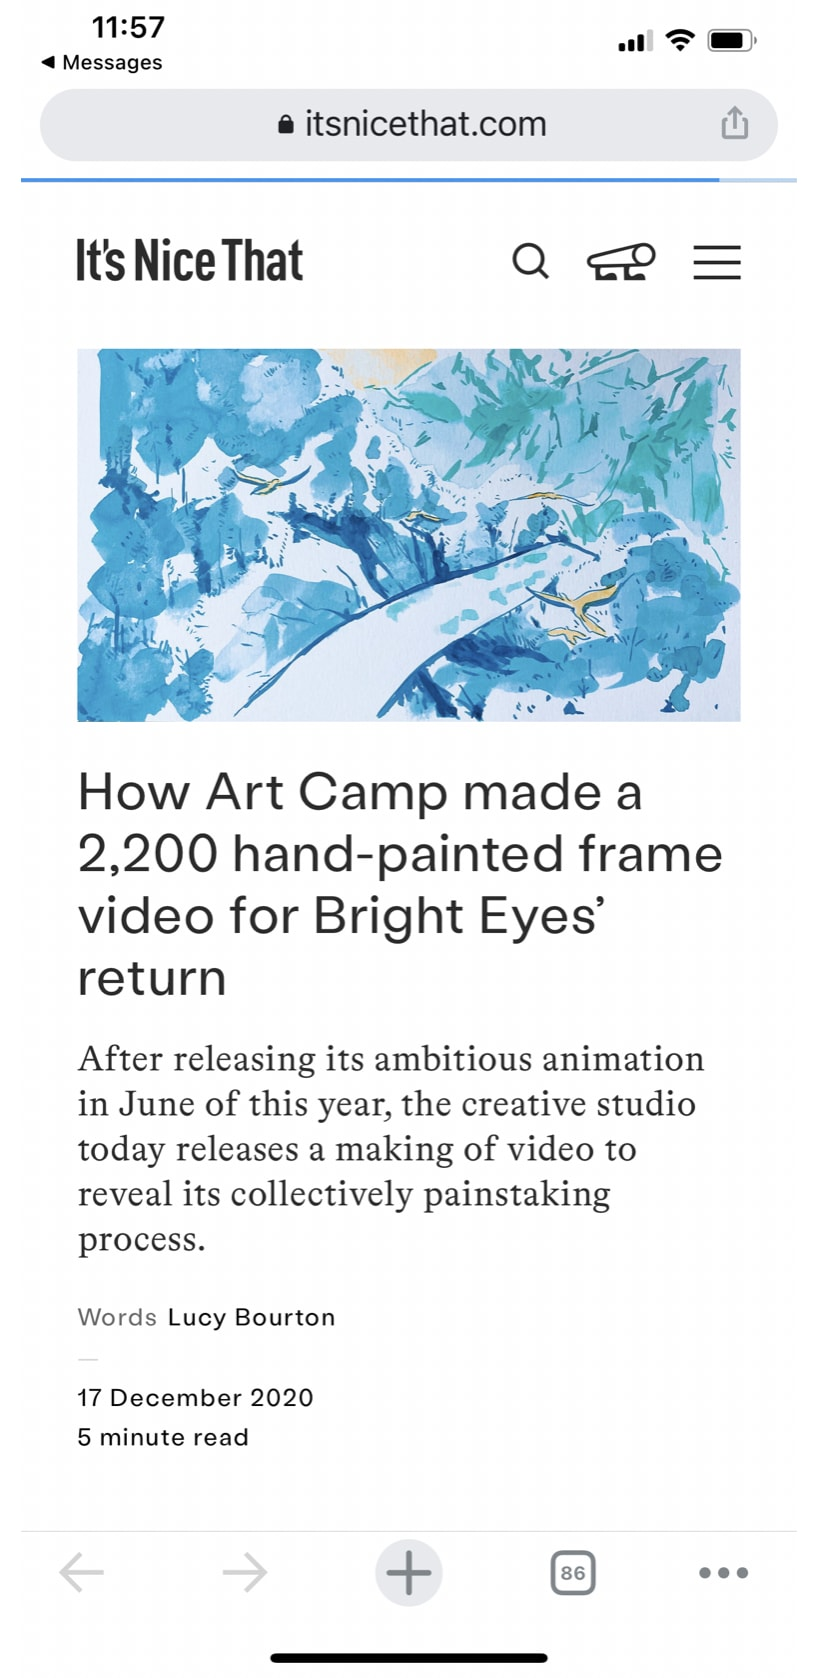 Art Camp: An Experiment in Collaboration